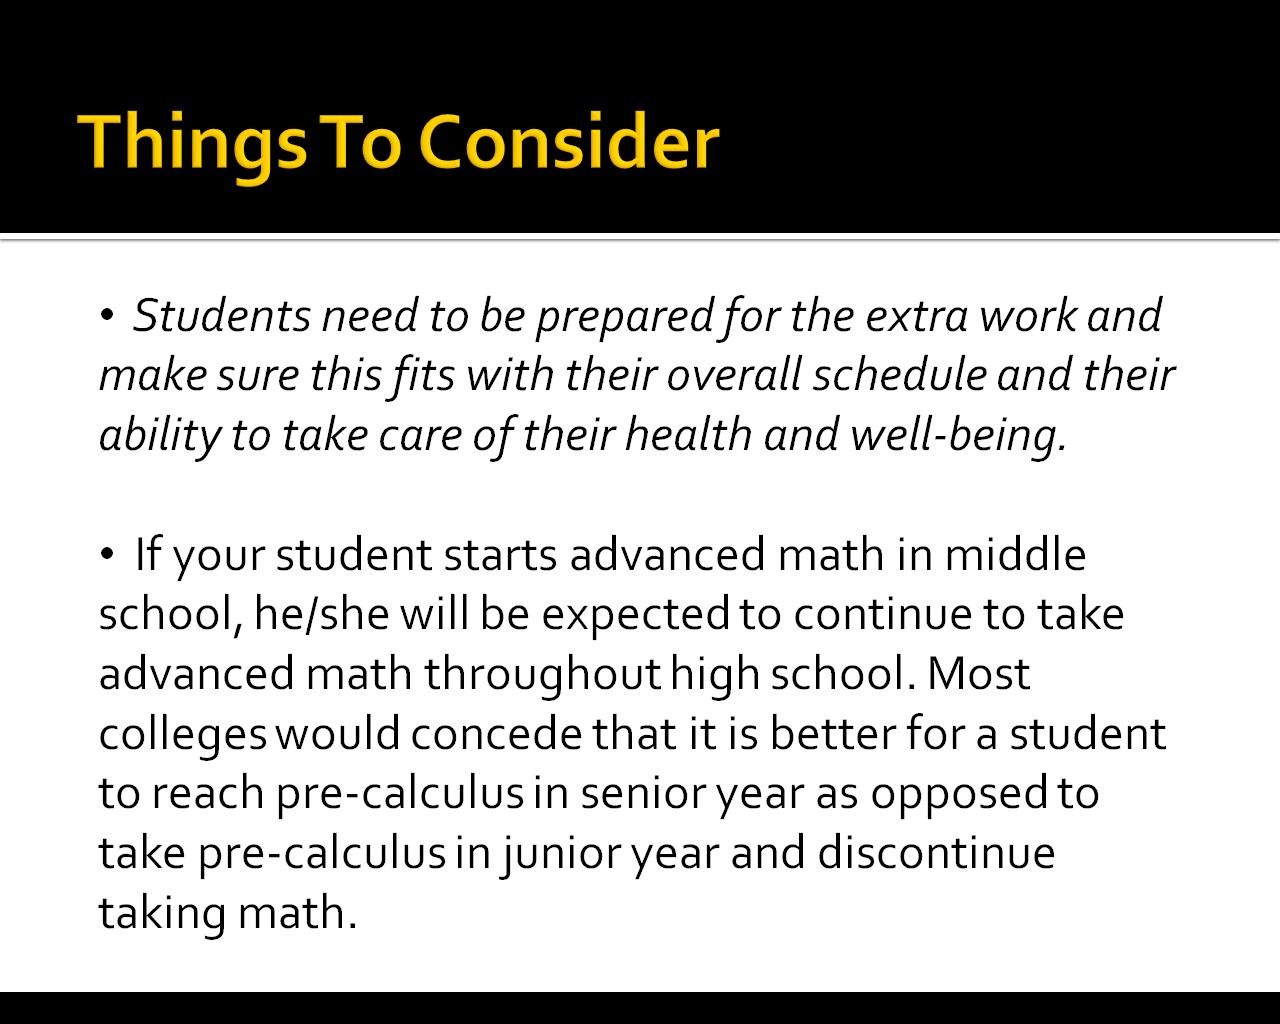 To Accelerate or Not Accelerate in Middle School - The Middle School ...